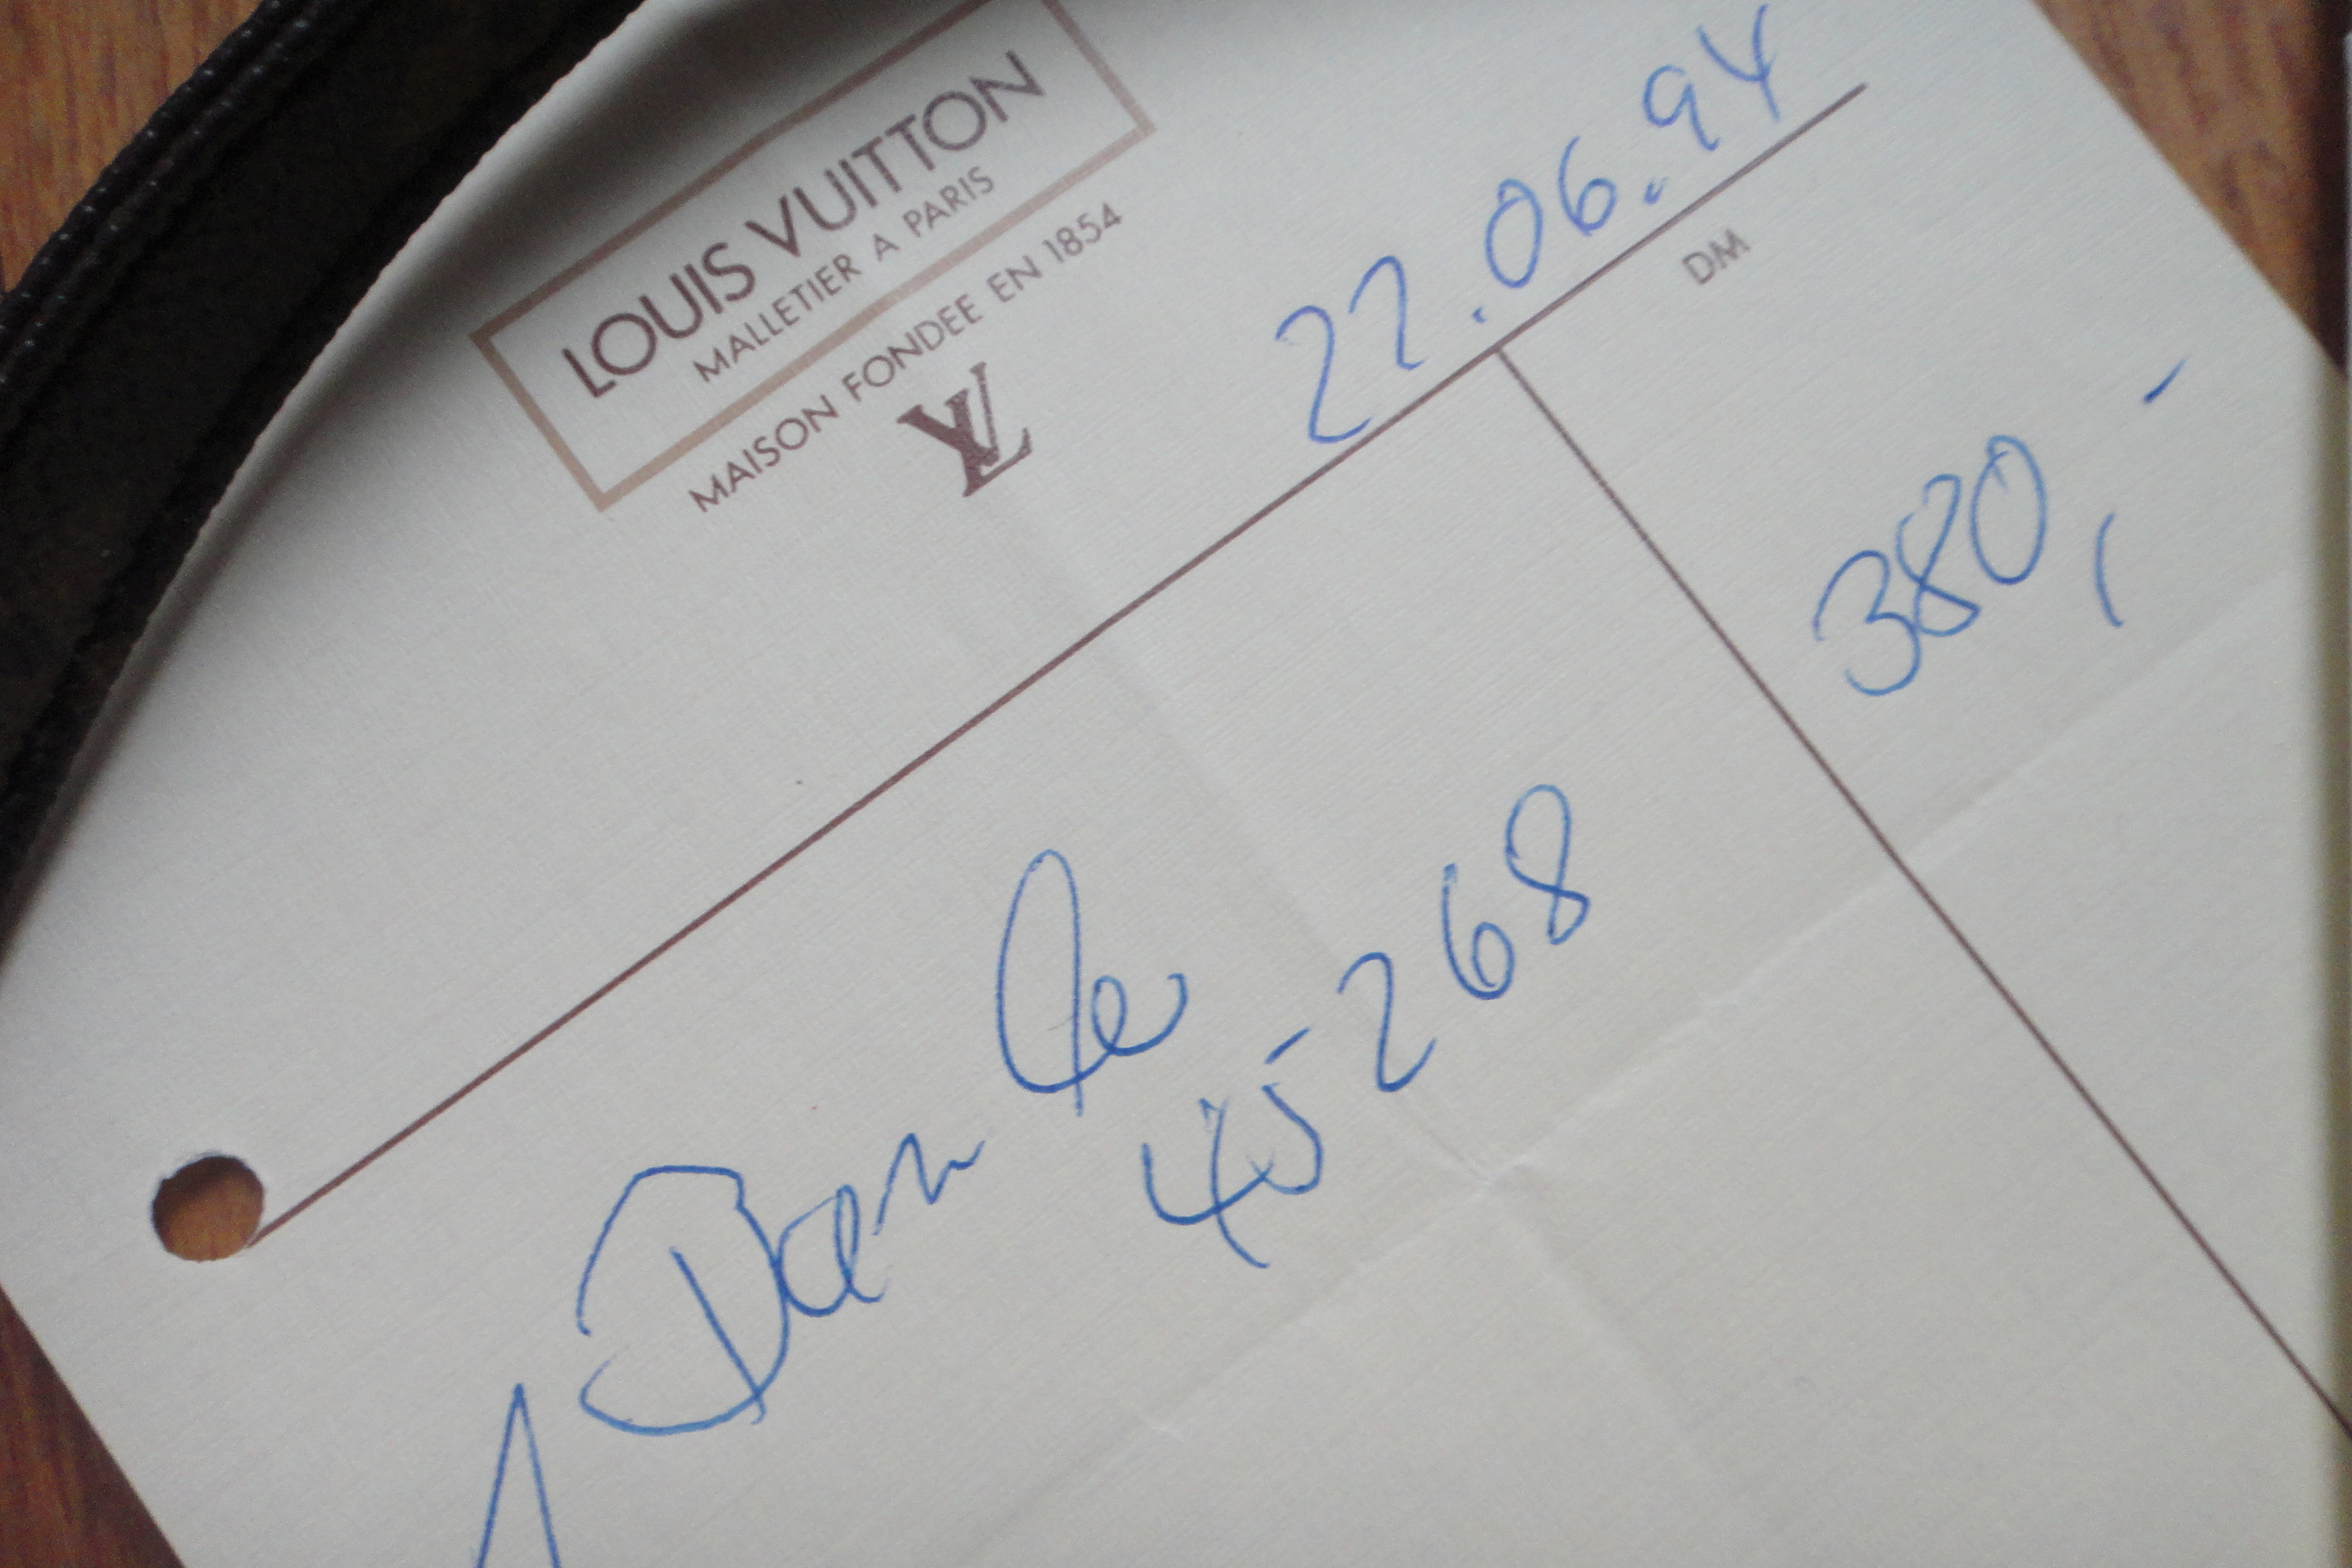 invoice of my first Louis Vuitton bag - Rechnung meiner ersten Louis Vuitton Tasche